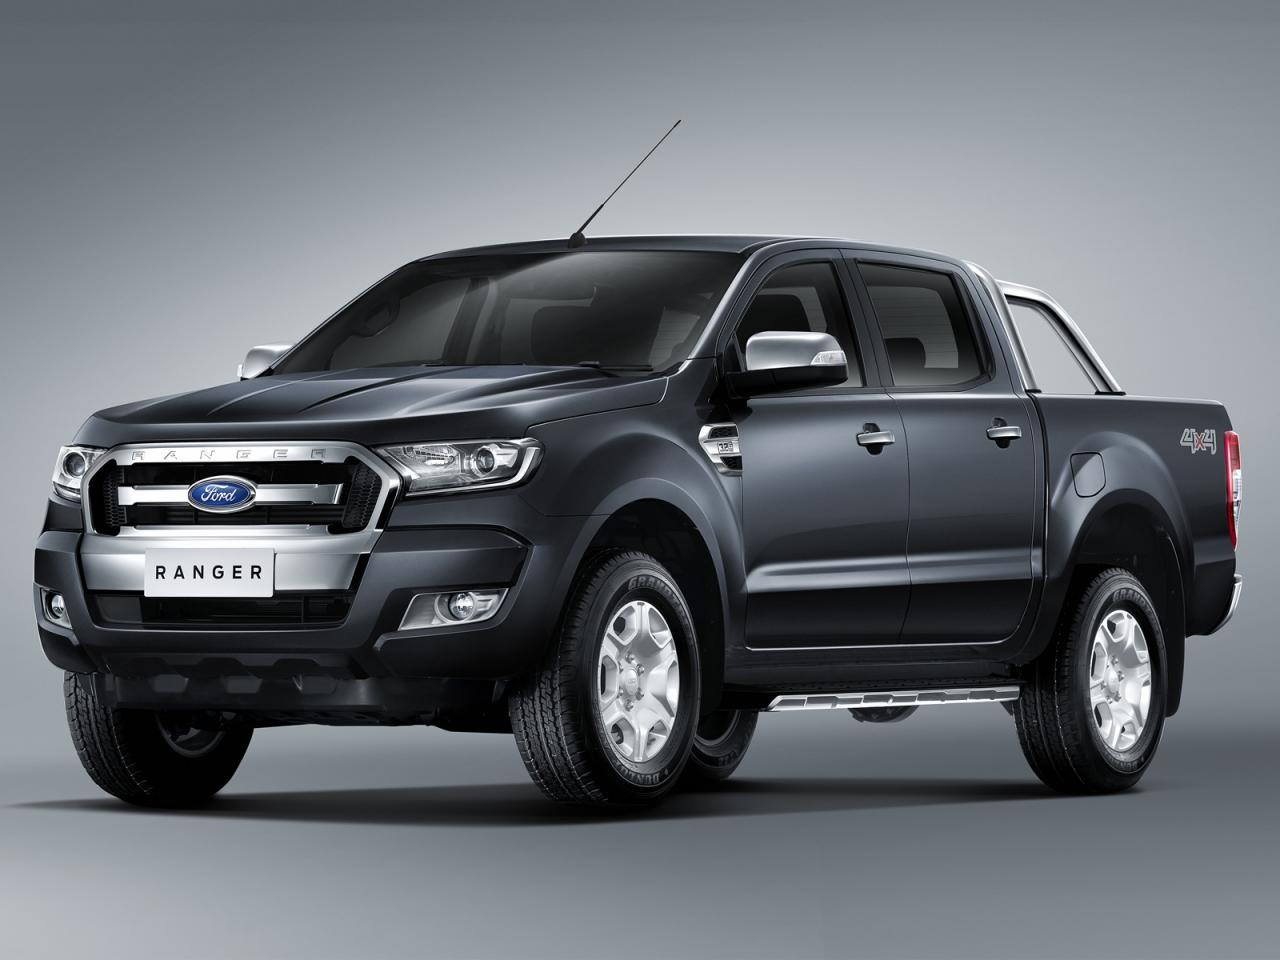 2016 ford ranger unveiled on sale in australia q3 performancedrive. Black Bedroom Furniture Sets. Home Design Ideas